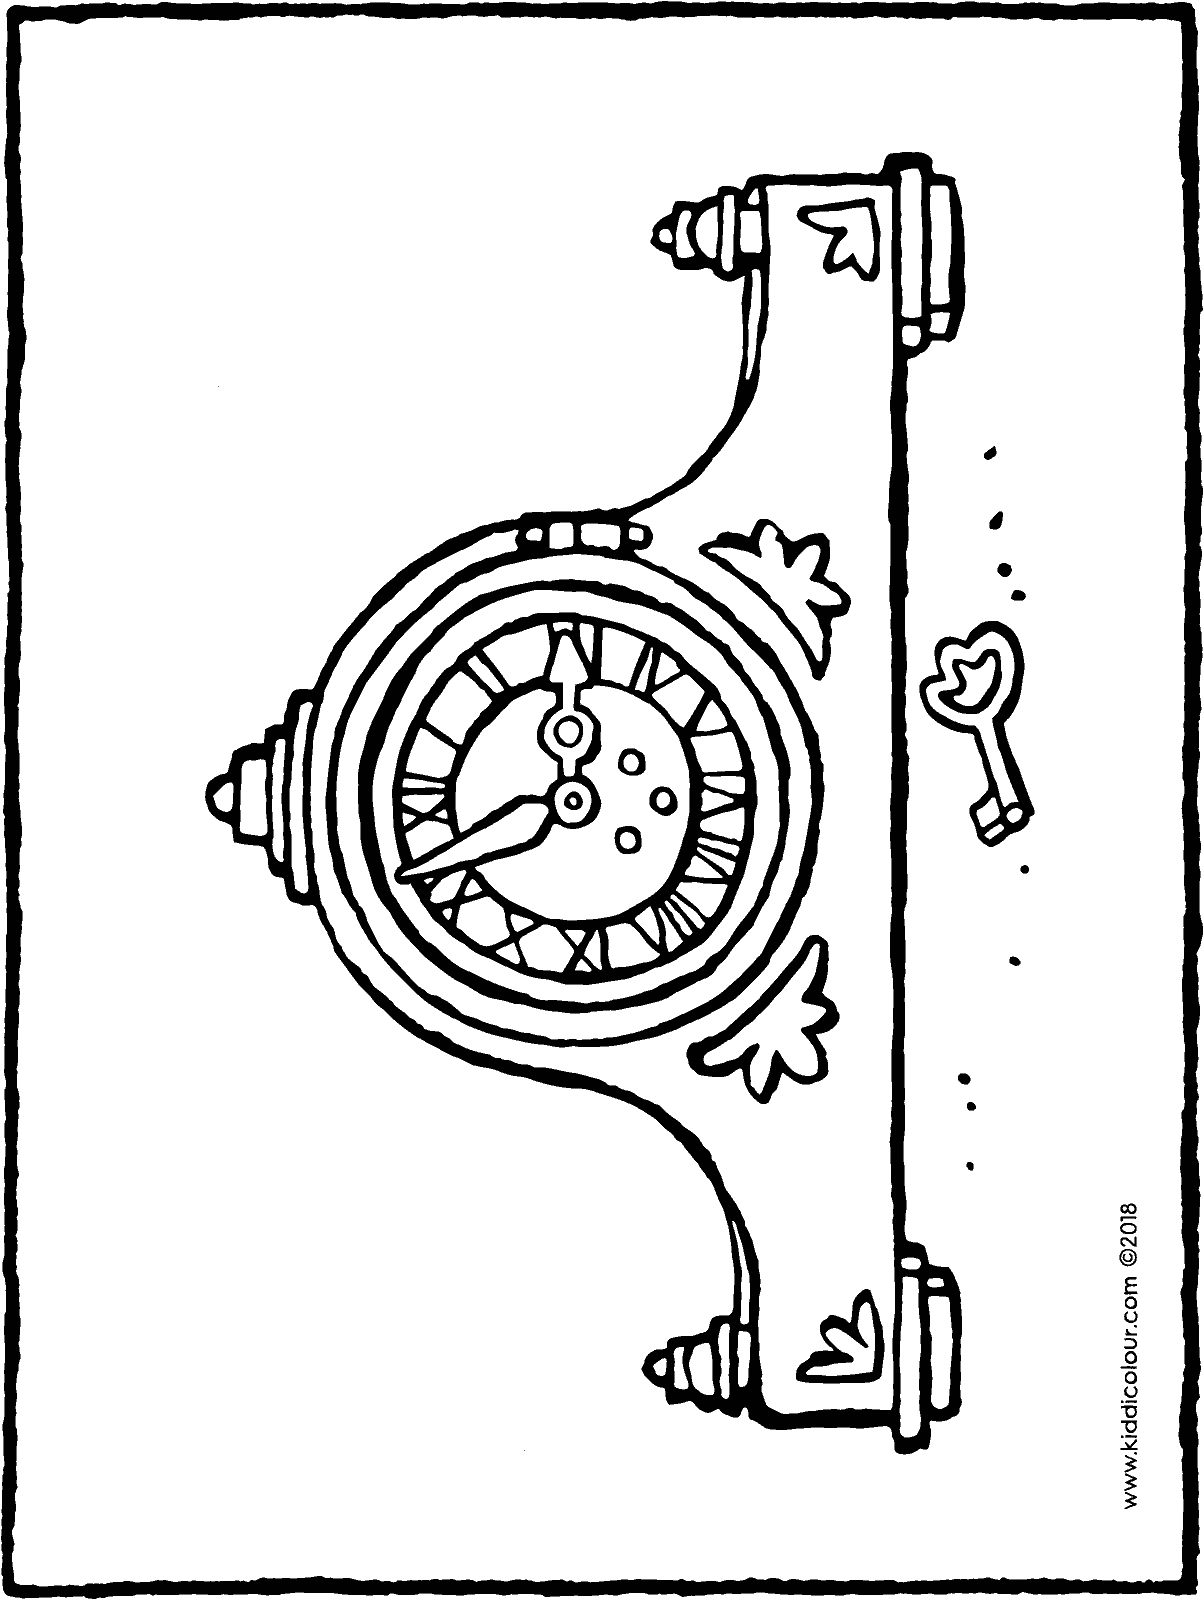 antique clock colouring page drawing picture 01H